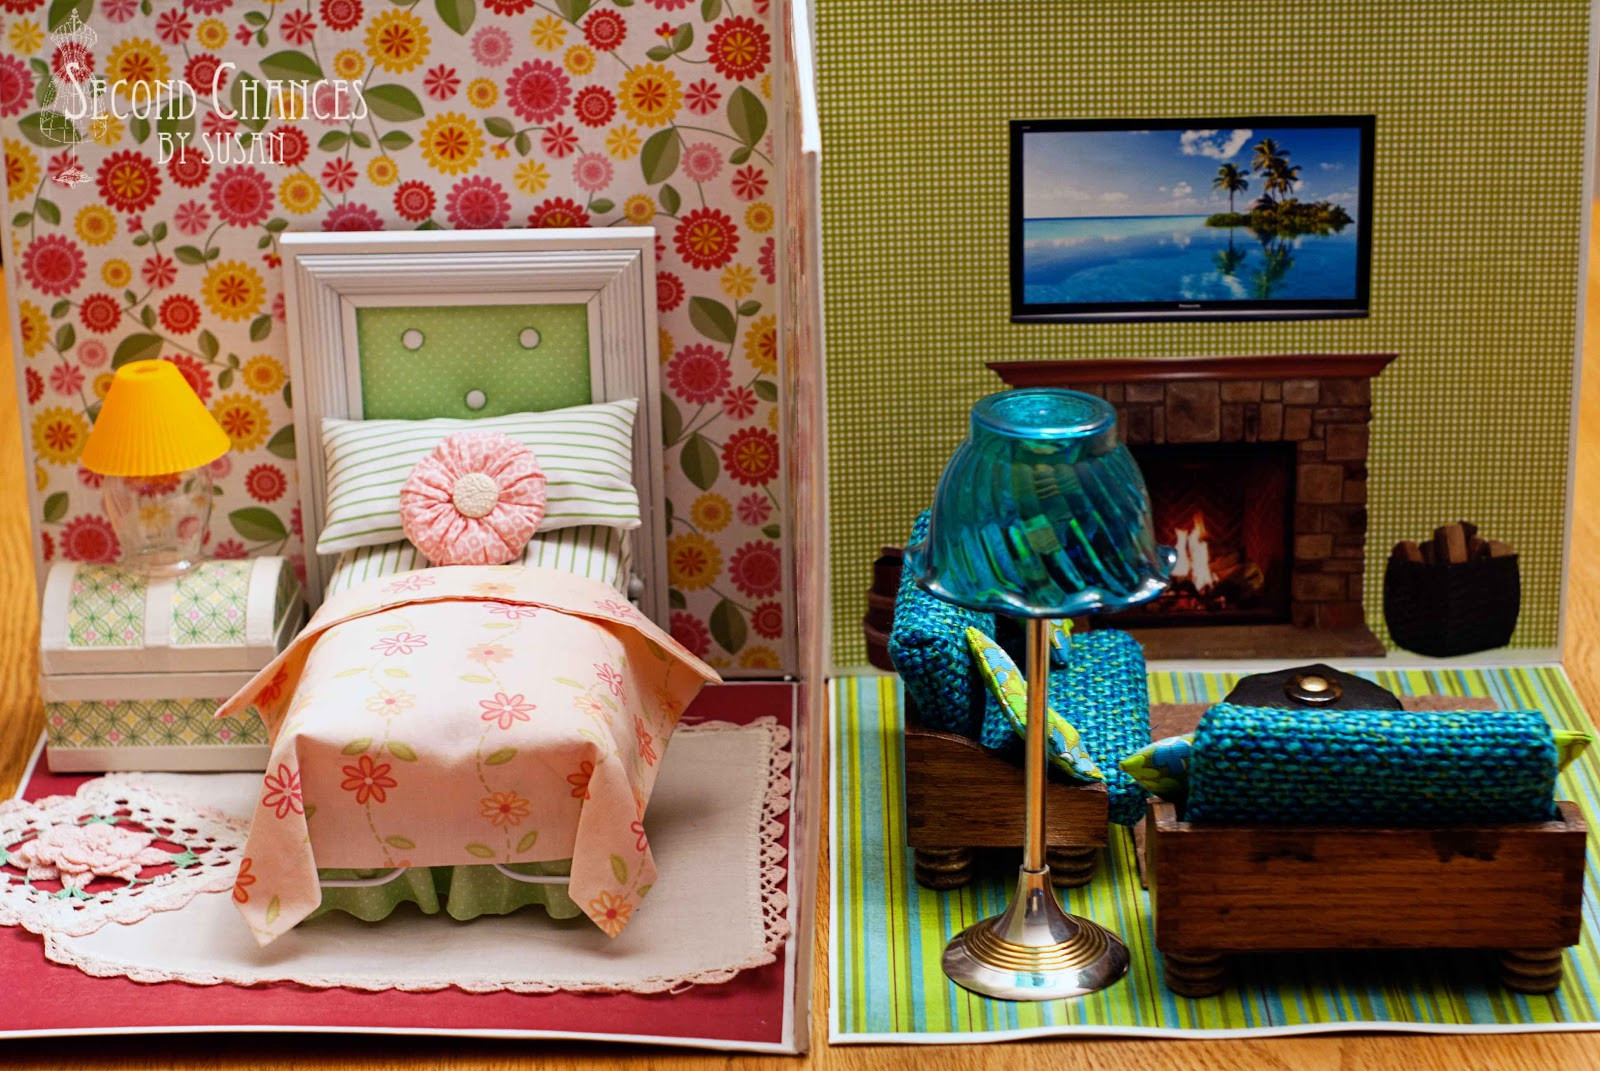 Best ideas about DIY Dolls Furniture . Save or Pin Second Chances by Susan Collapsible Dollhouse Now.